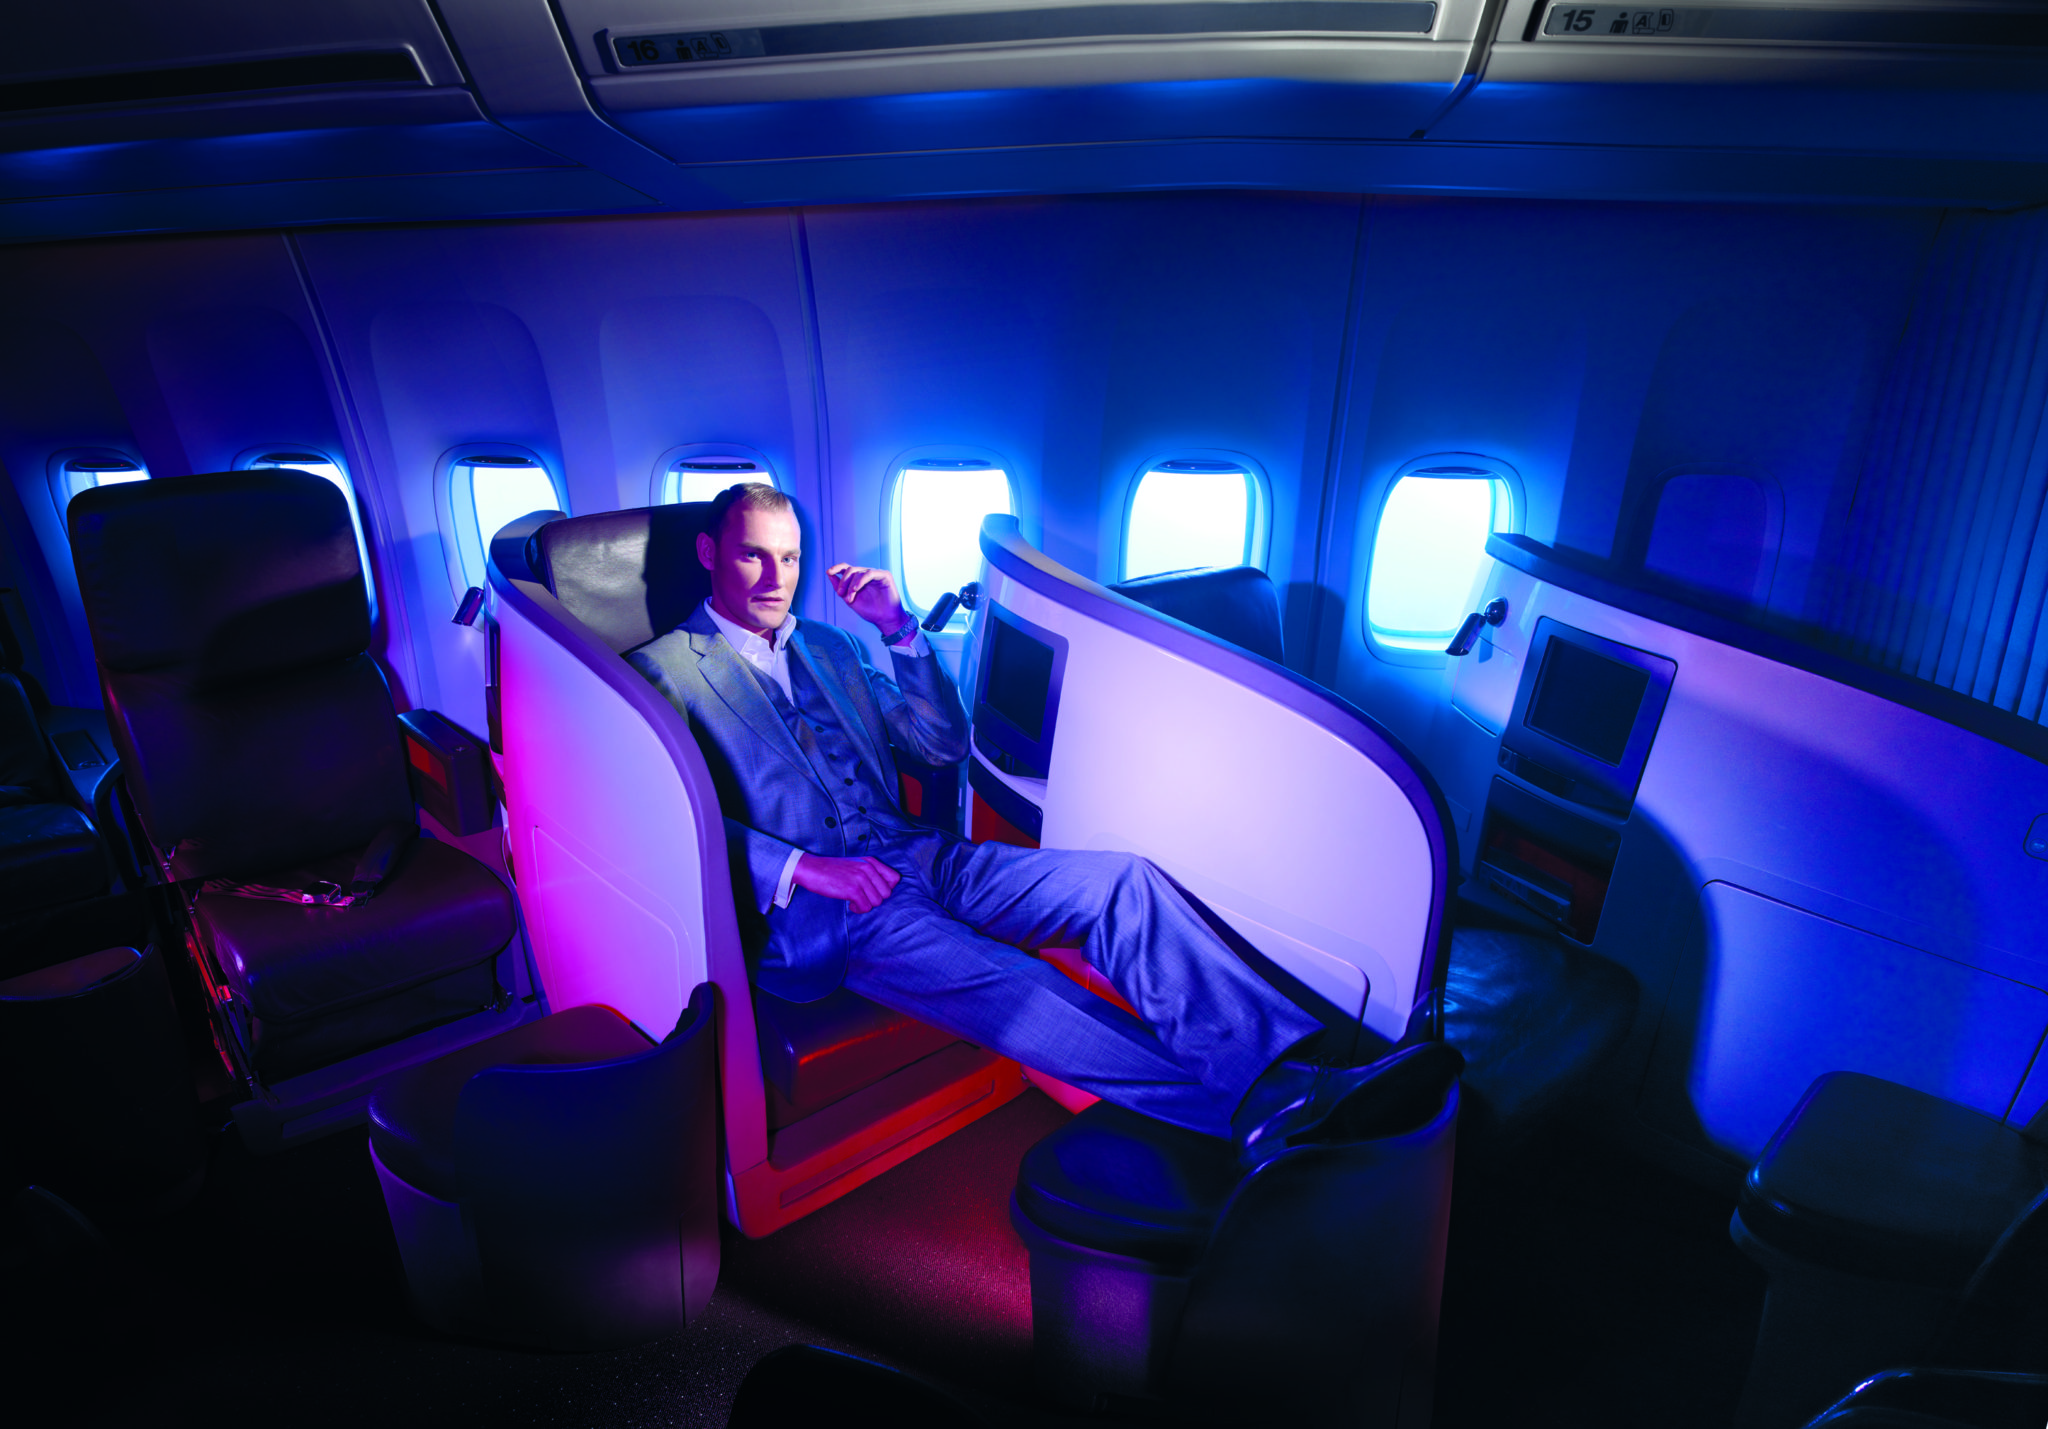 Somewhat controversially, the Upper Class Suite flips over for bed mode. Image: Virgin Atlantic